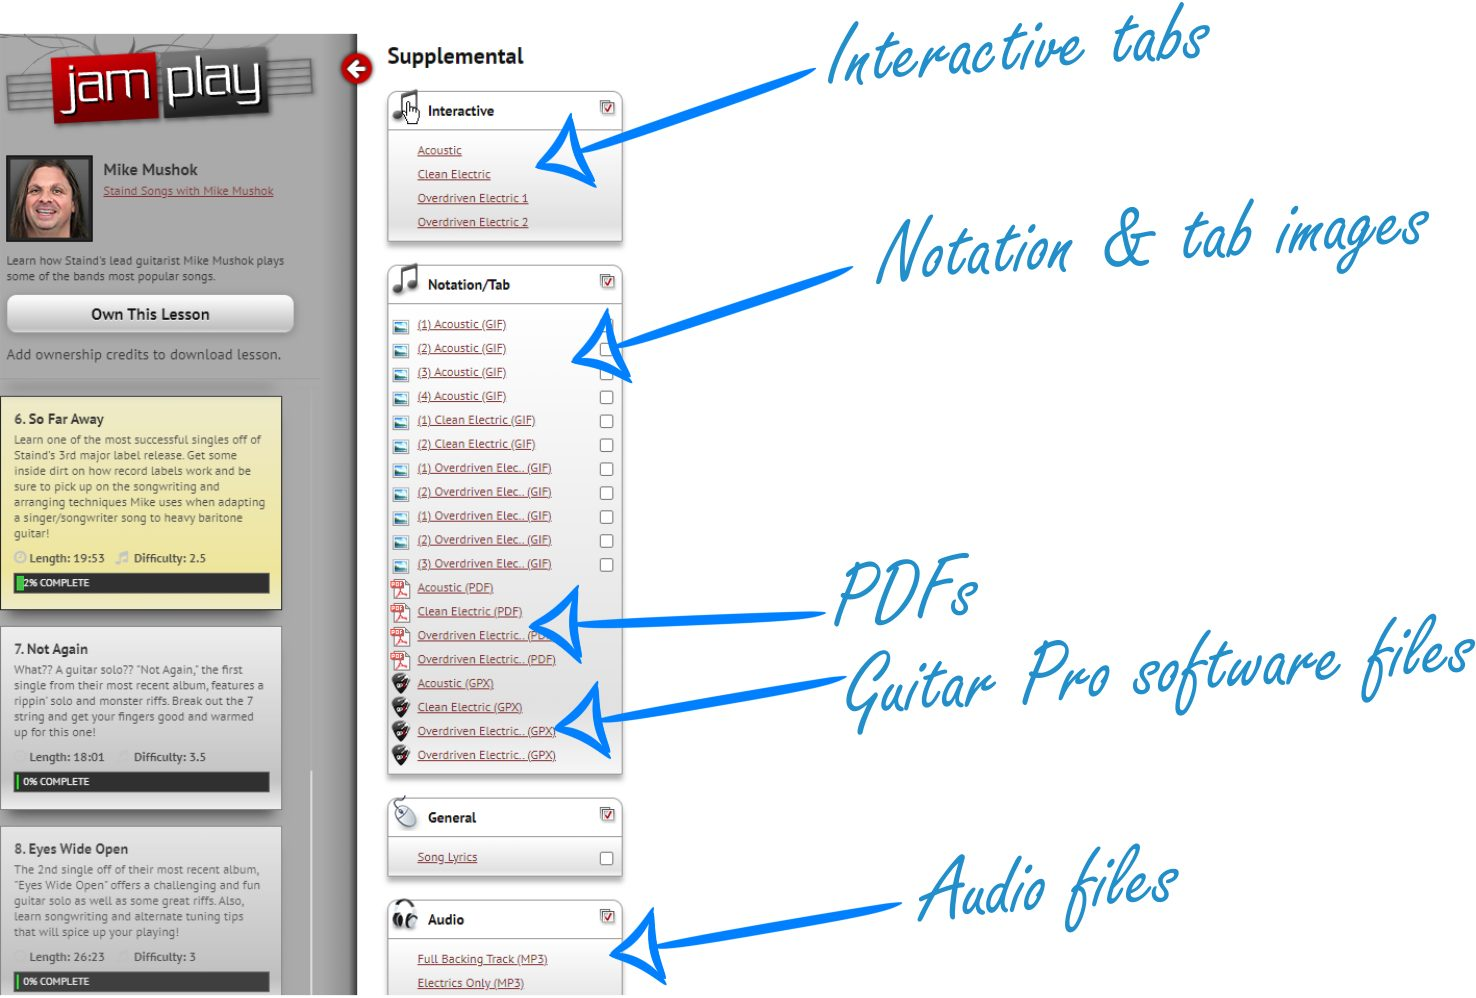 Supplemental Content in JamPlay (noted example)